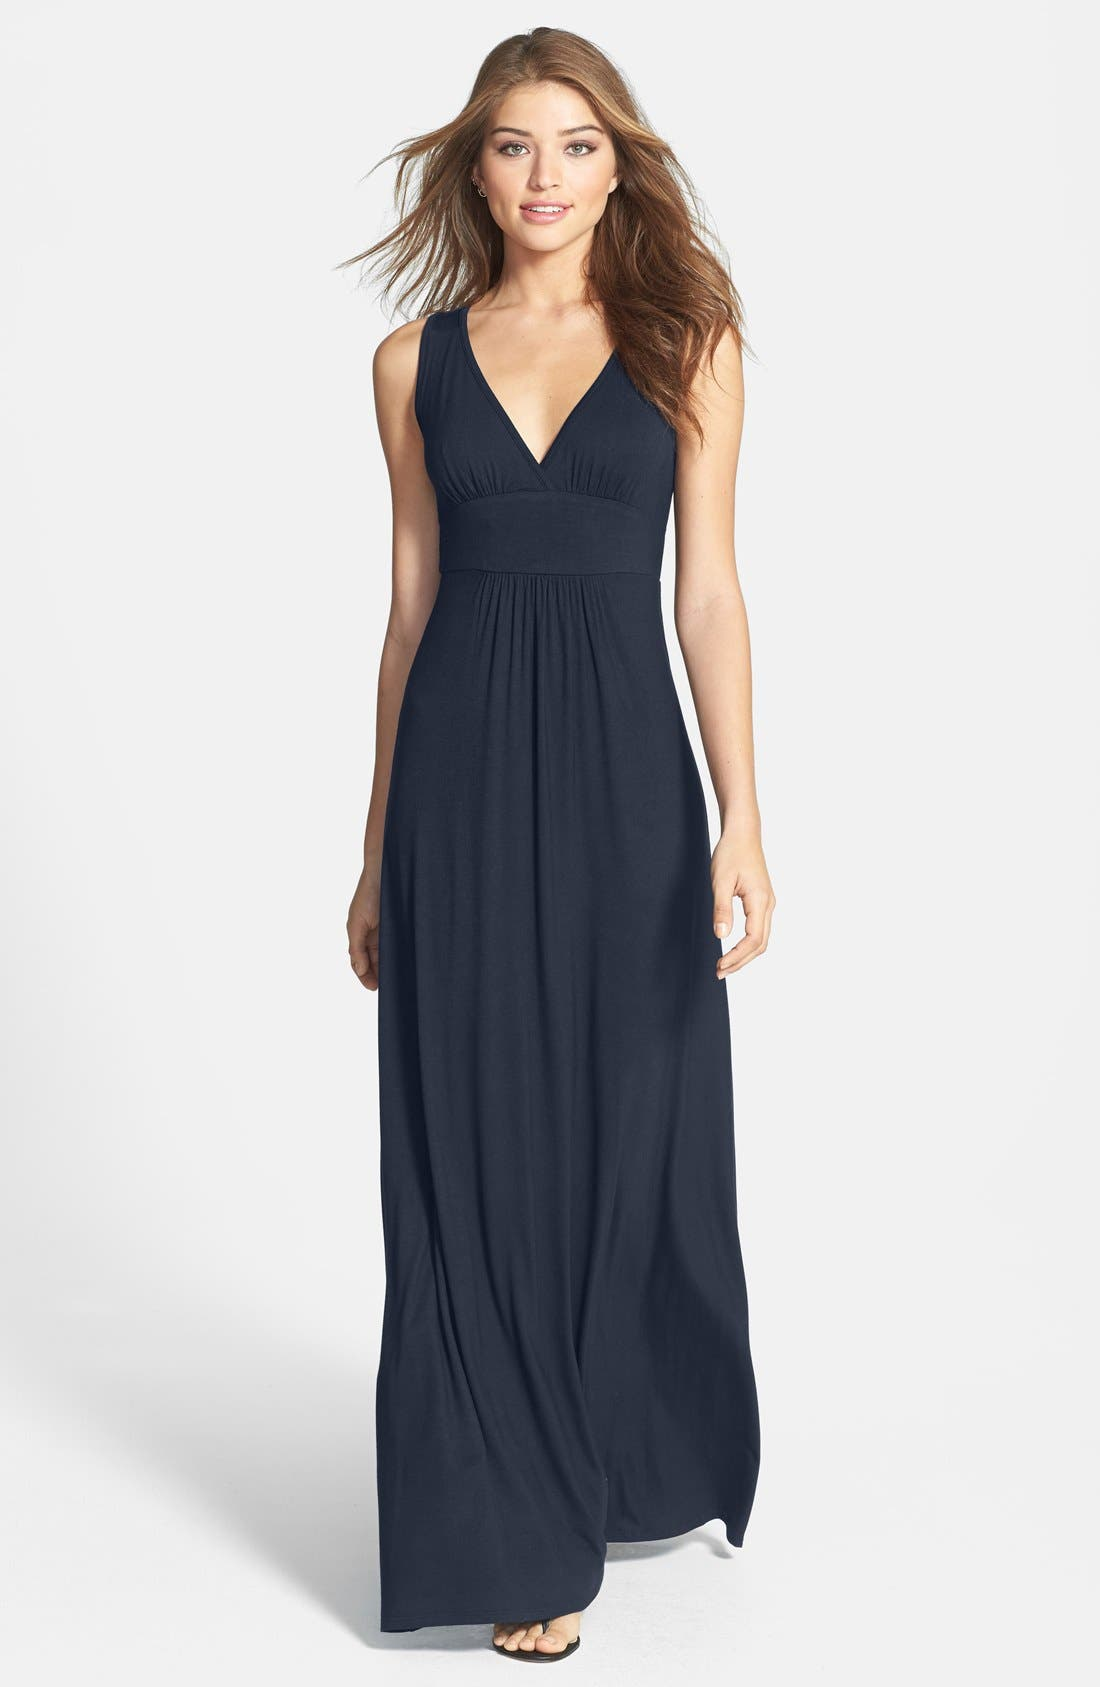 Maxi dress knot the bottom up theory